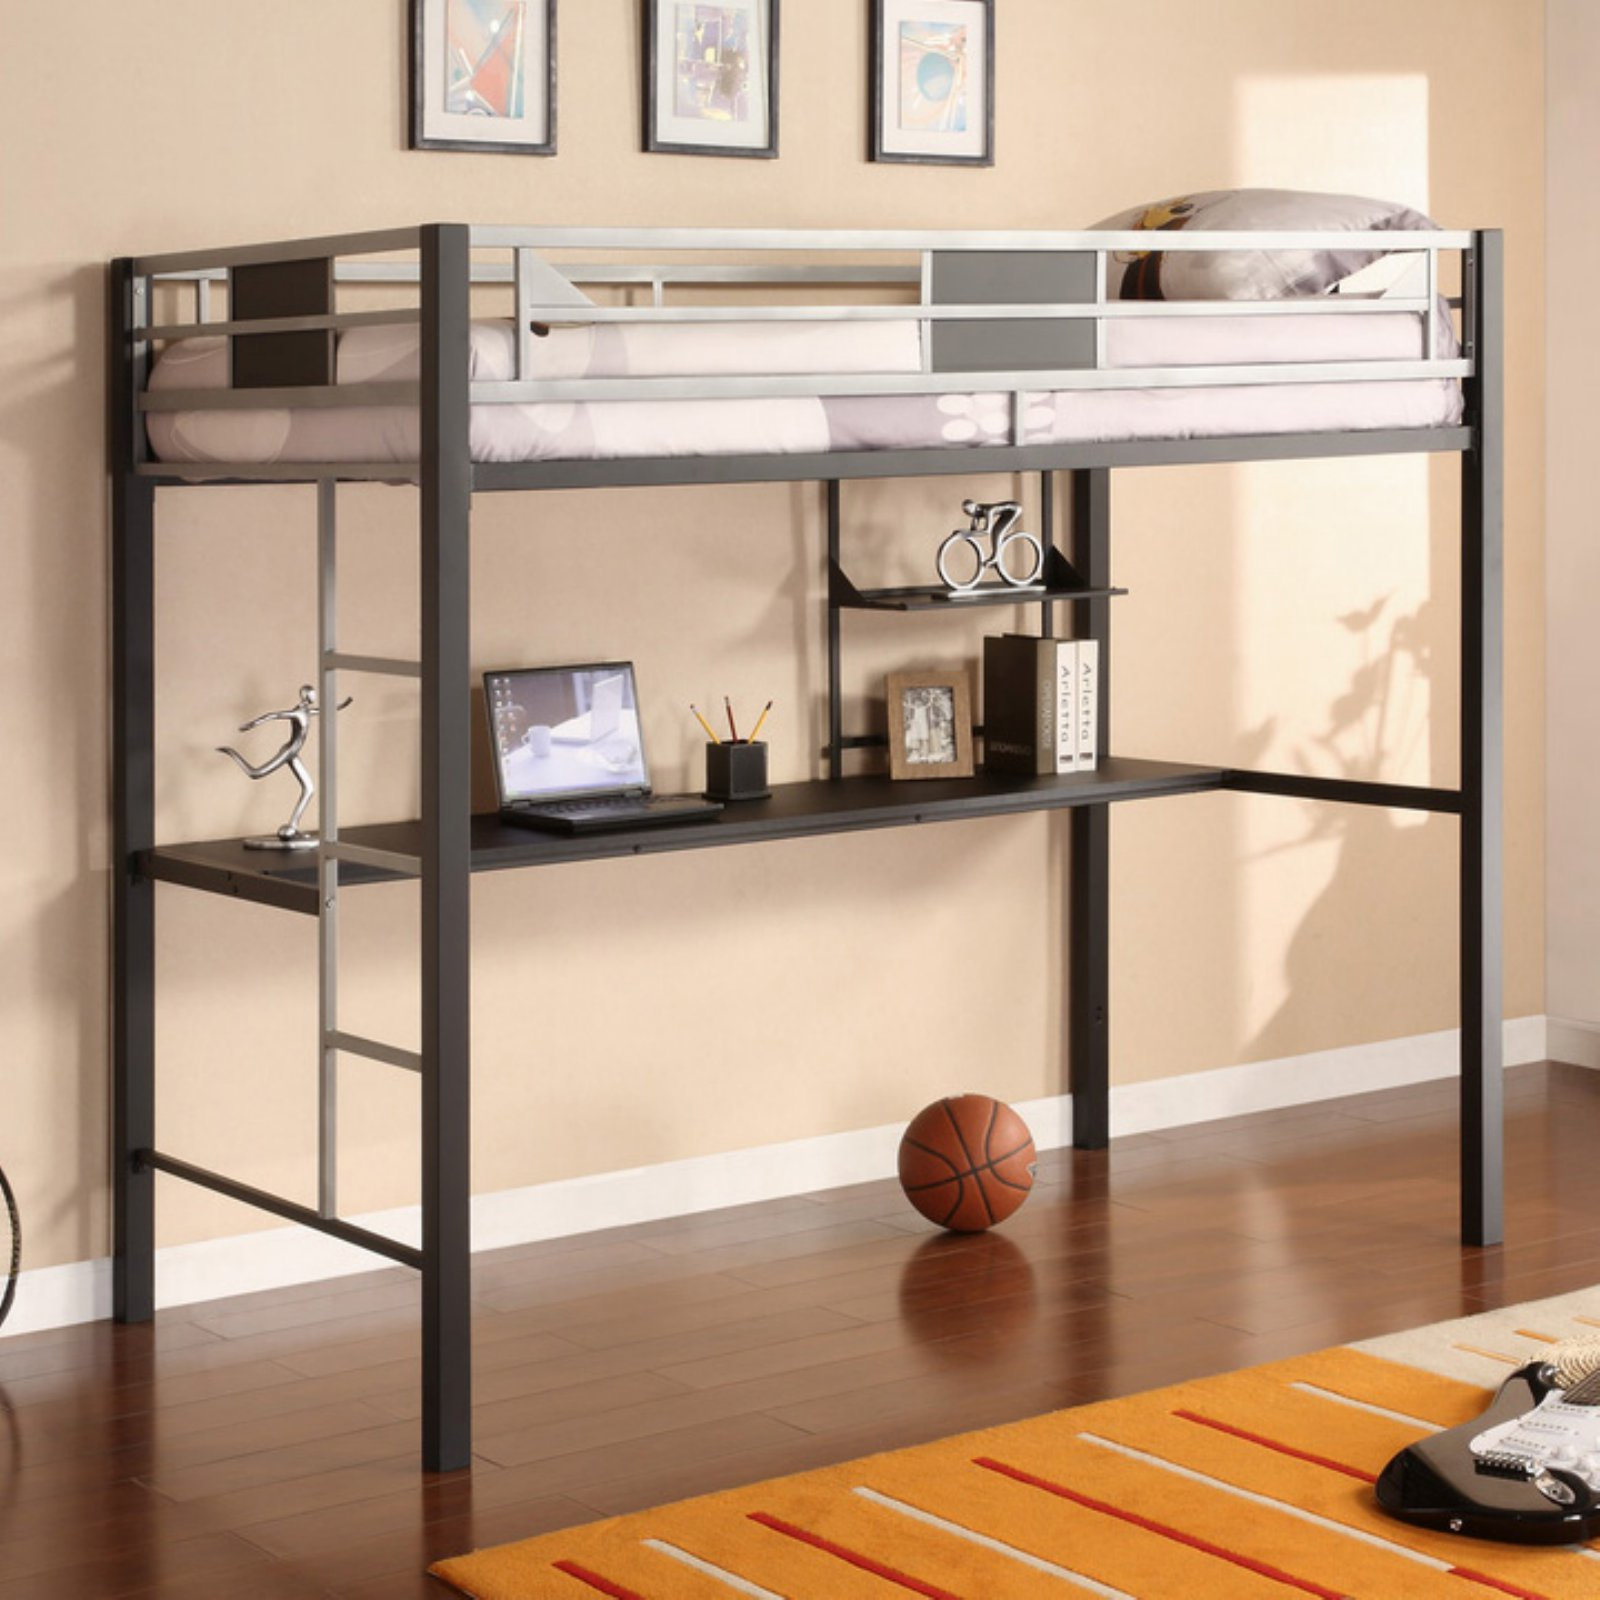 Dorel Silver Screen Twin Metal Loft Bed with Desk, Black/Silver